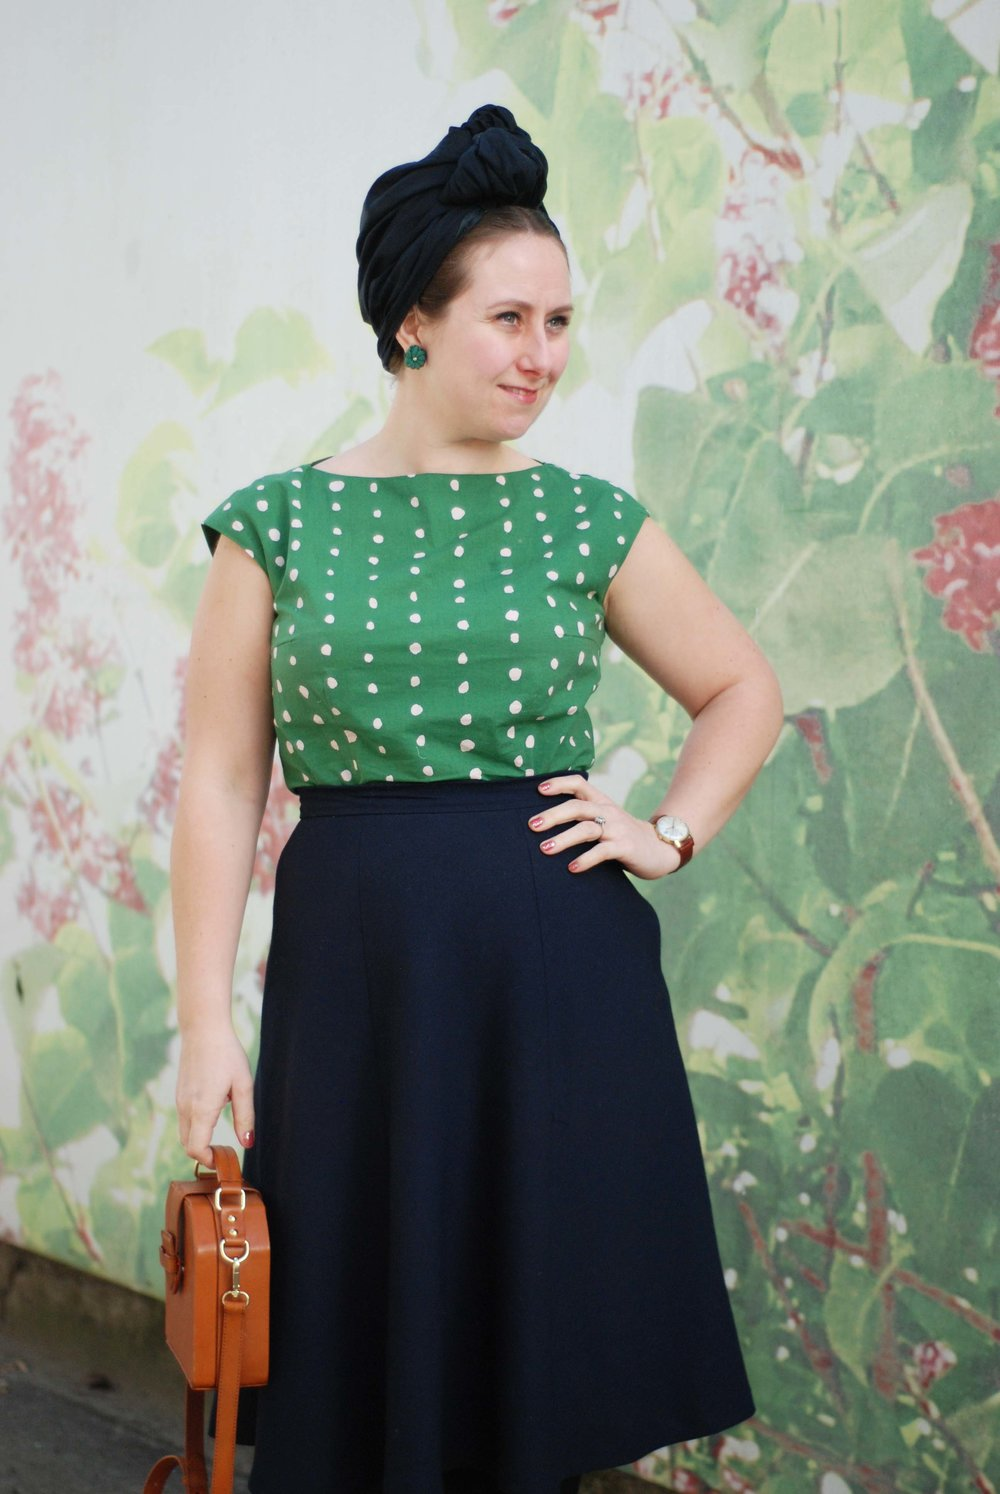 My free sewing pattern in a green fabric from Metermeter.dk and a blue skirt made from myNo. 5 århus sewing pattern. -